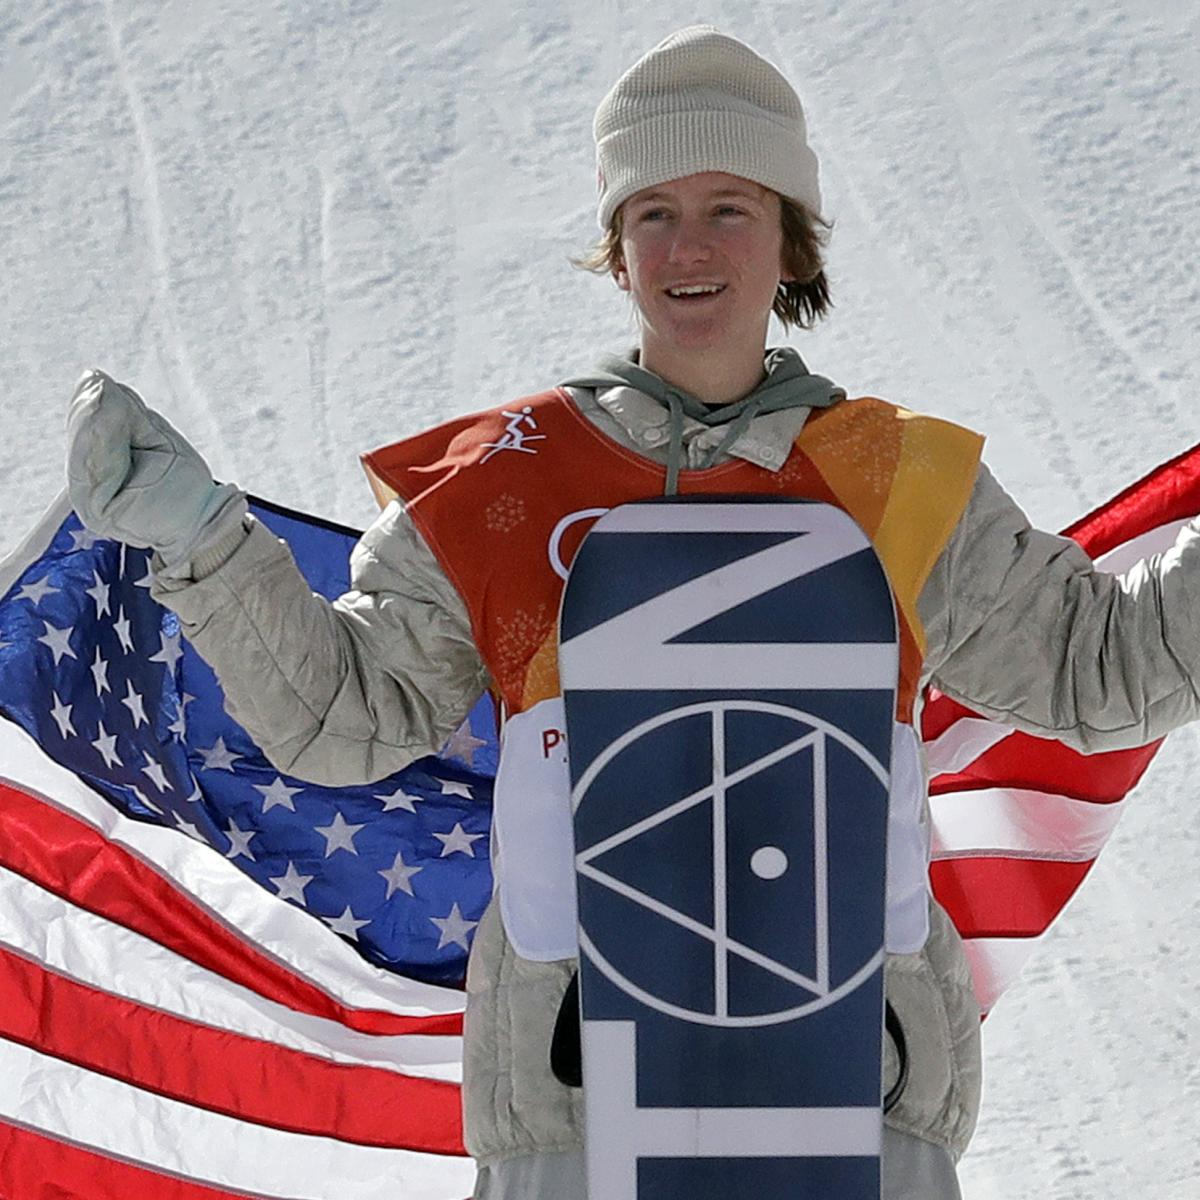 Teen Sensation Red Gerard Keeps His Cool to Deliver Surprising 1st Gold for USA